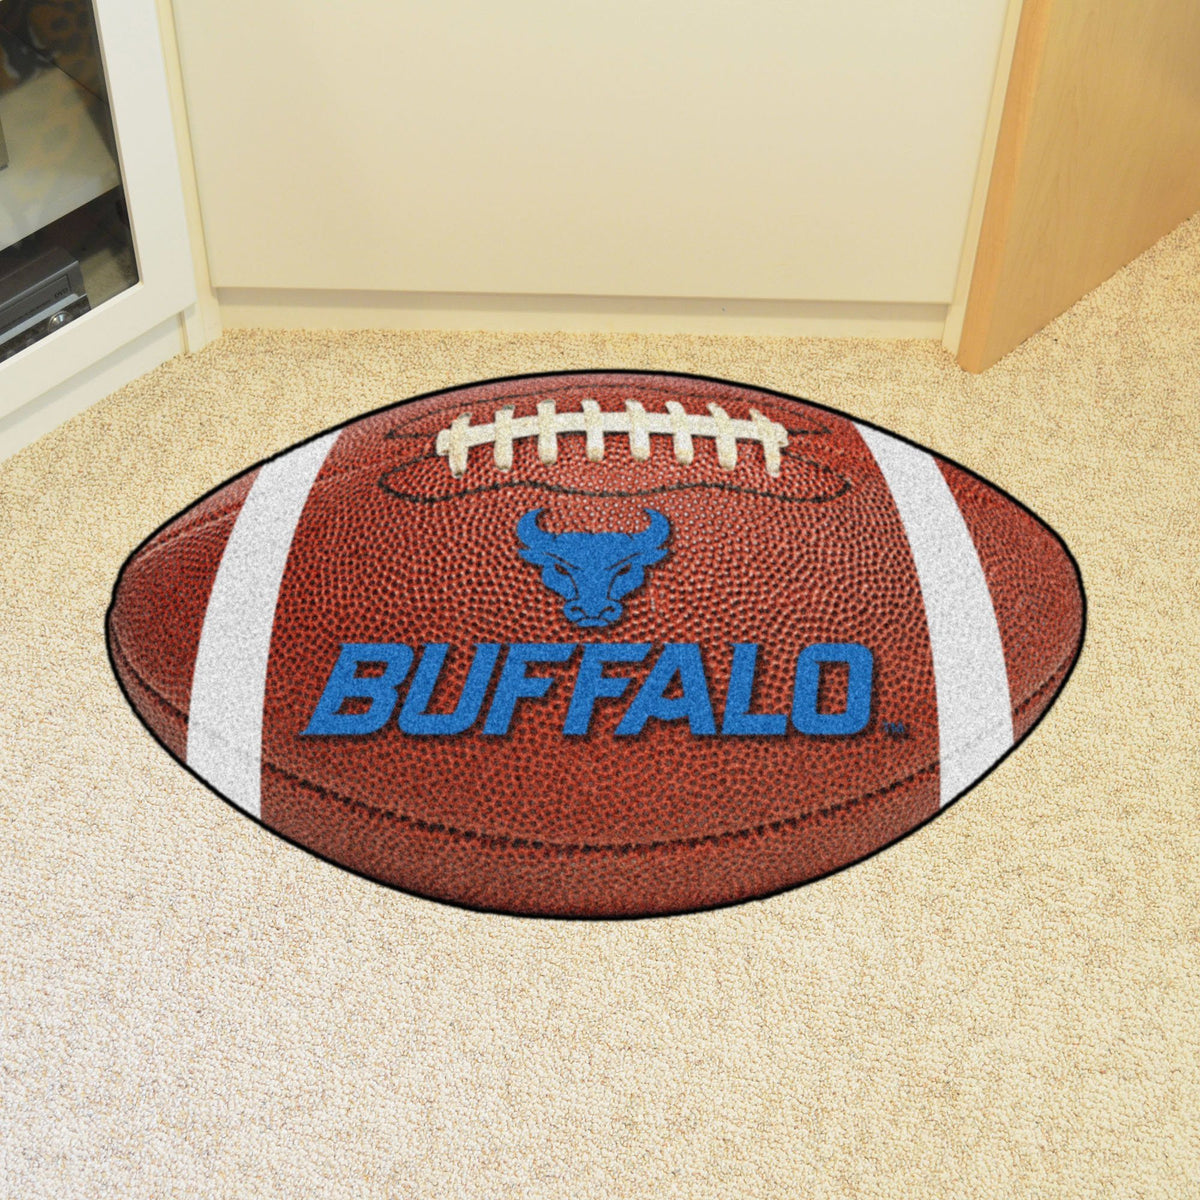 Collegiate - Football Mat: A - K Collegiate Mats, Rectangular Mats, Football Mat, Collegiate, Home Fan Mats Buffalo